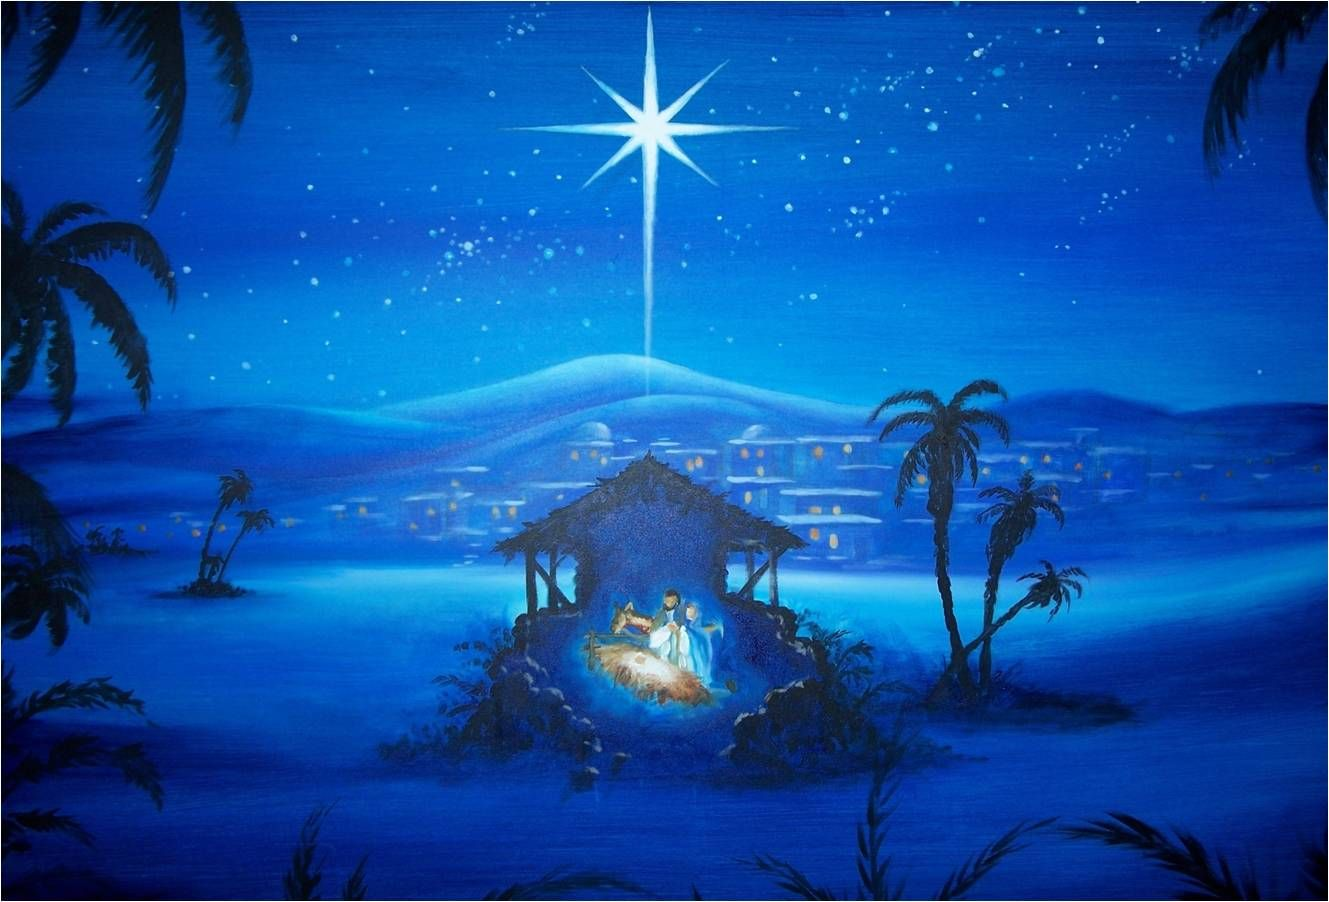 Nativity scene wallpaper christmas painting computer Christmas card scenes to paint